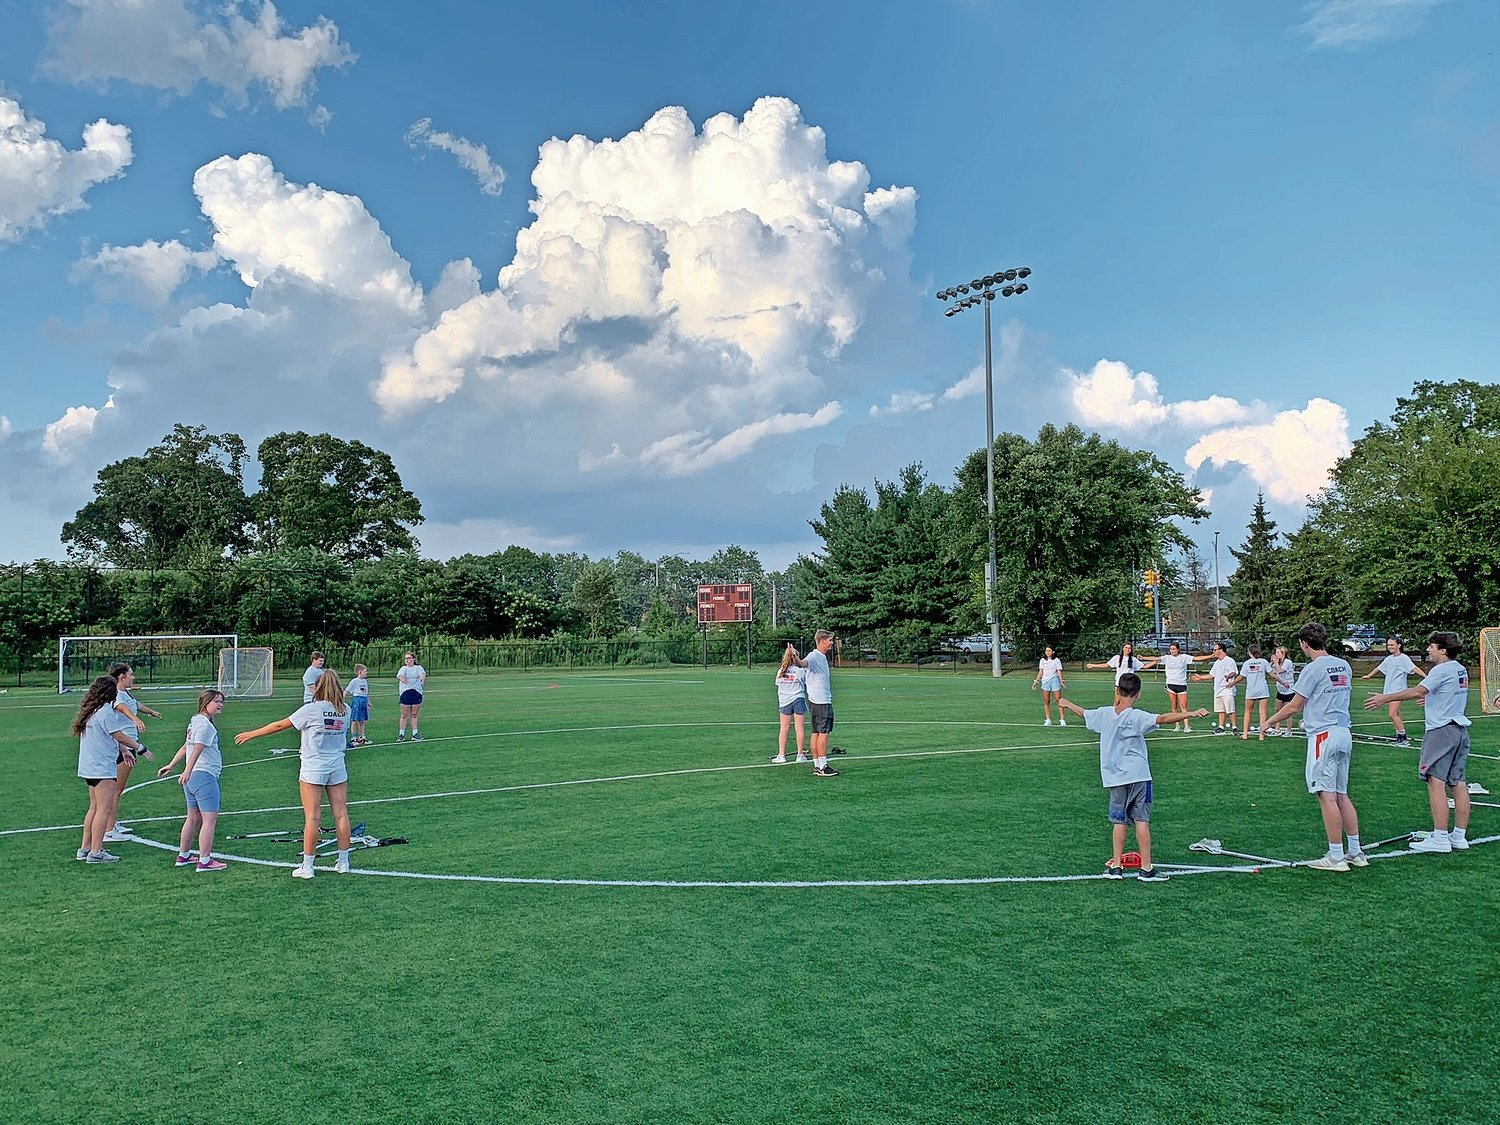 The group played games on the field during the lacrosse clinic.